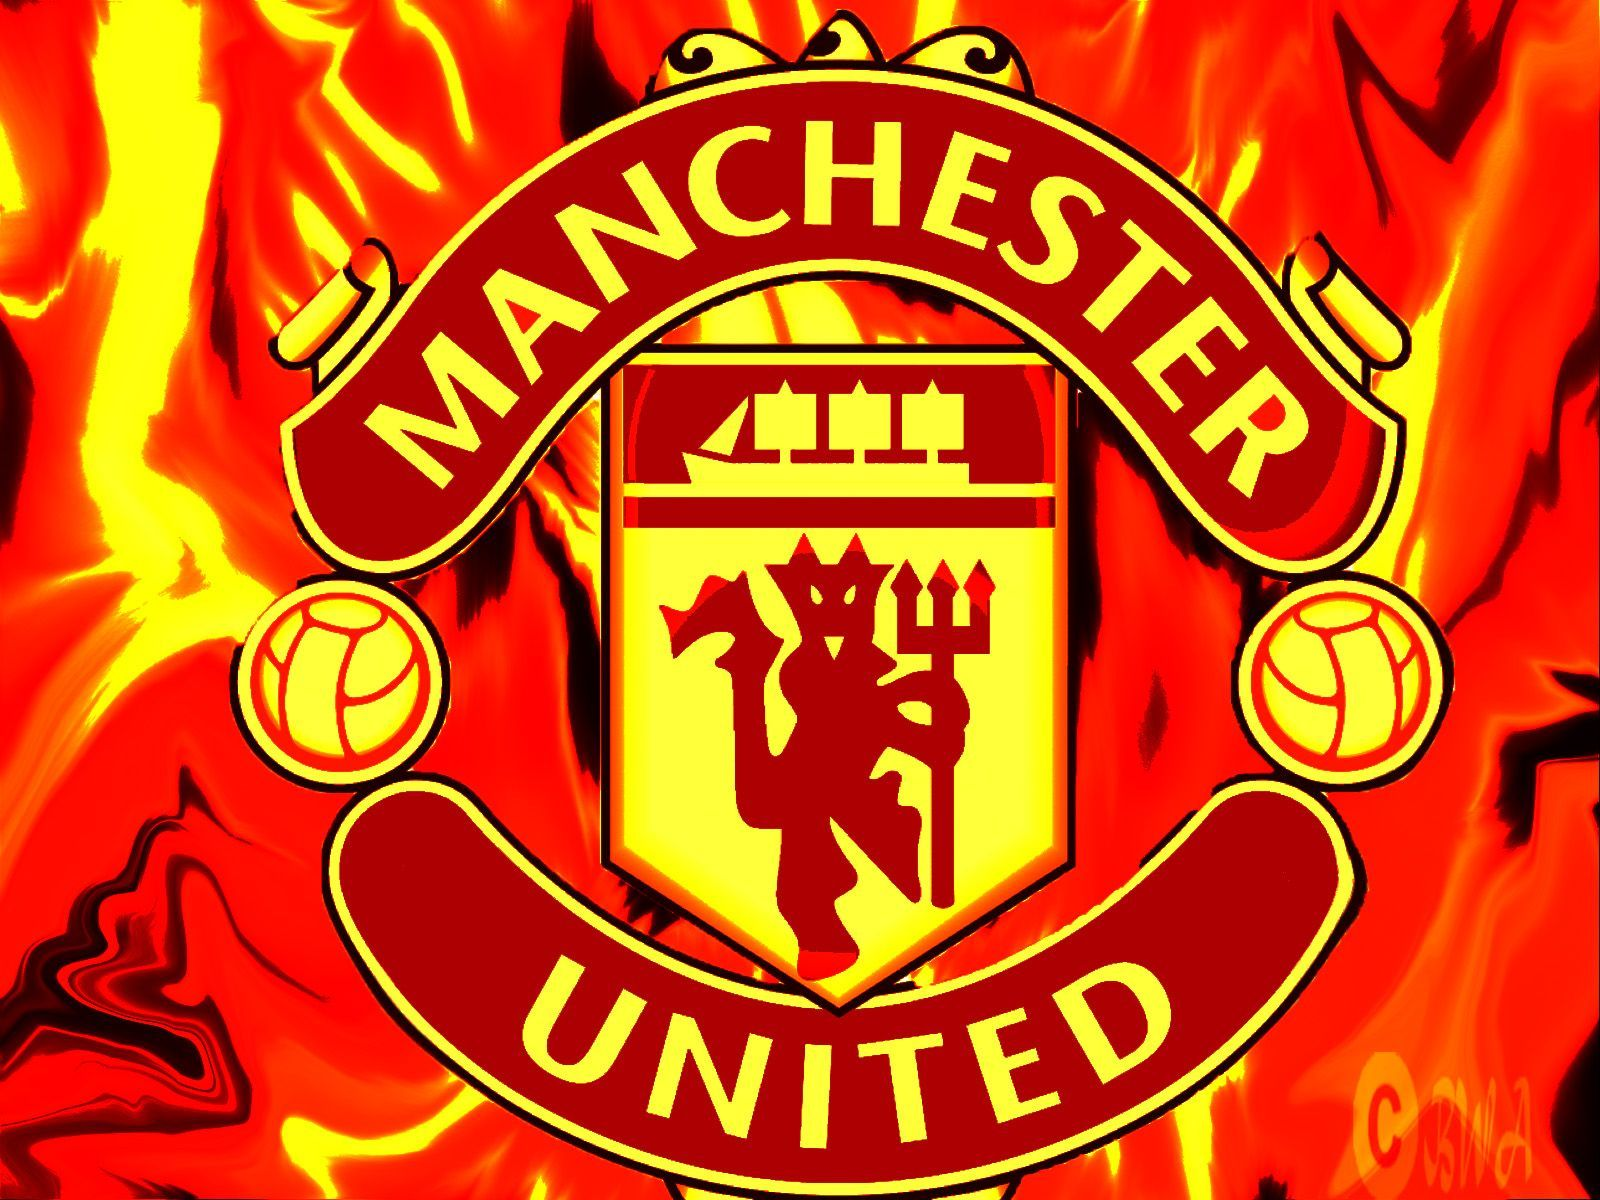 Manchester United Wallpaper Manchester United Wallpaper Manchester United Manchester United Logo